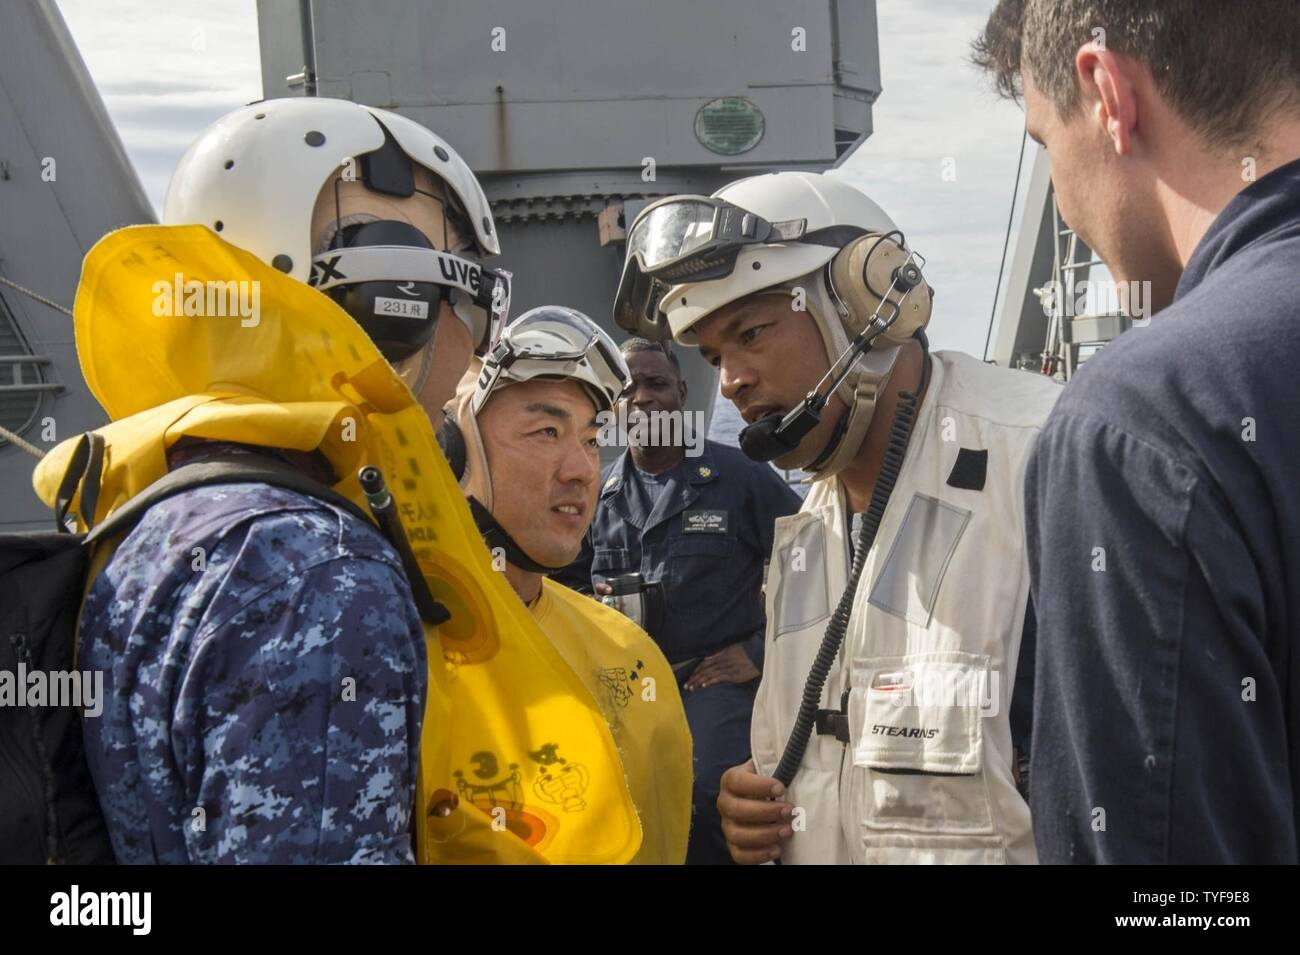 PACIFIC OCEAN (Nov. 6, 2016) Cmdr. Gervy Alota, commanding officer of amphibious dock landing ship USS Comstock (LSD 45) greets Lt. j.g. Shogo Kudo, left, and Petty Officer 2nd Class Kazuhiko Iwanatsu, center, as they embark Comstock for Keen Sword 17. Keen Sword 17 is a joint and bilateral field training exercise (FTX) between U.S. and Japanese forces meant to increase readiness and interoperability within the framework of the U.S.-Japan alliance. - Stock Image